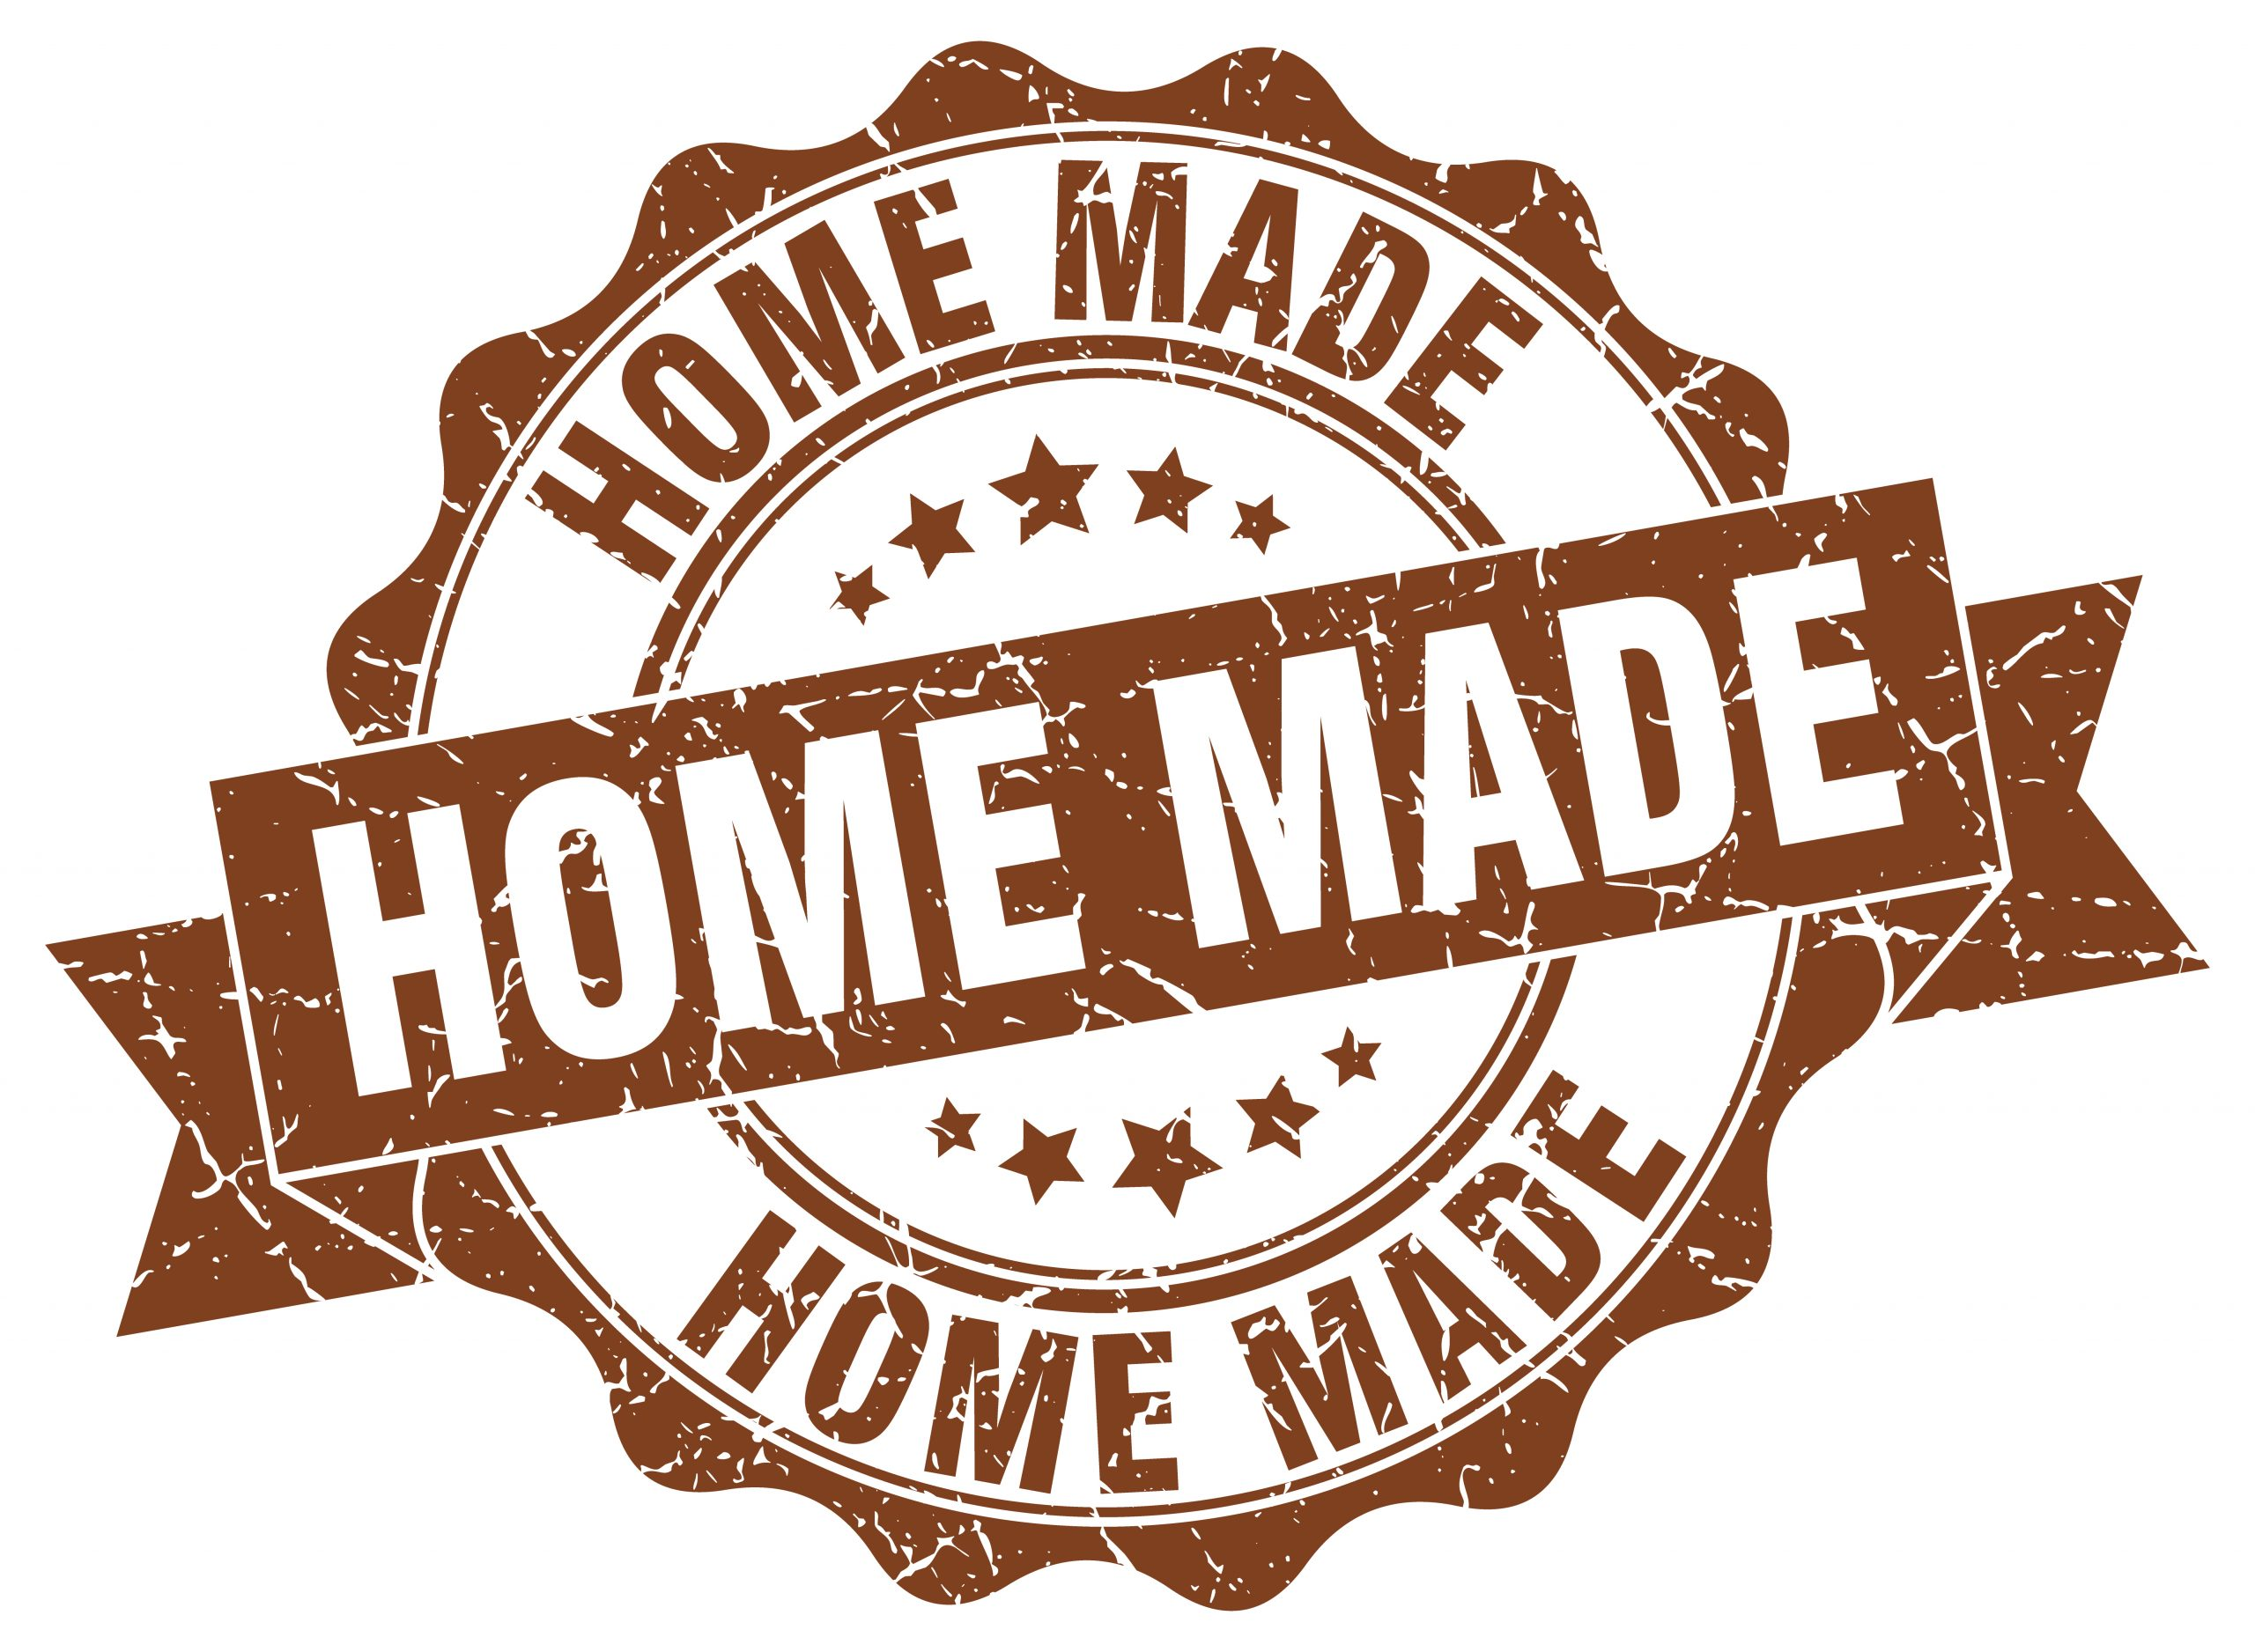 Home Made – Mobile, Manufactured and Modular Homes